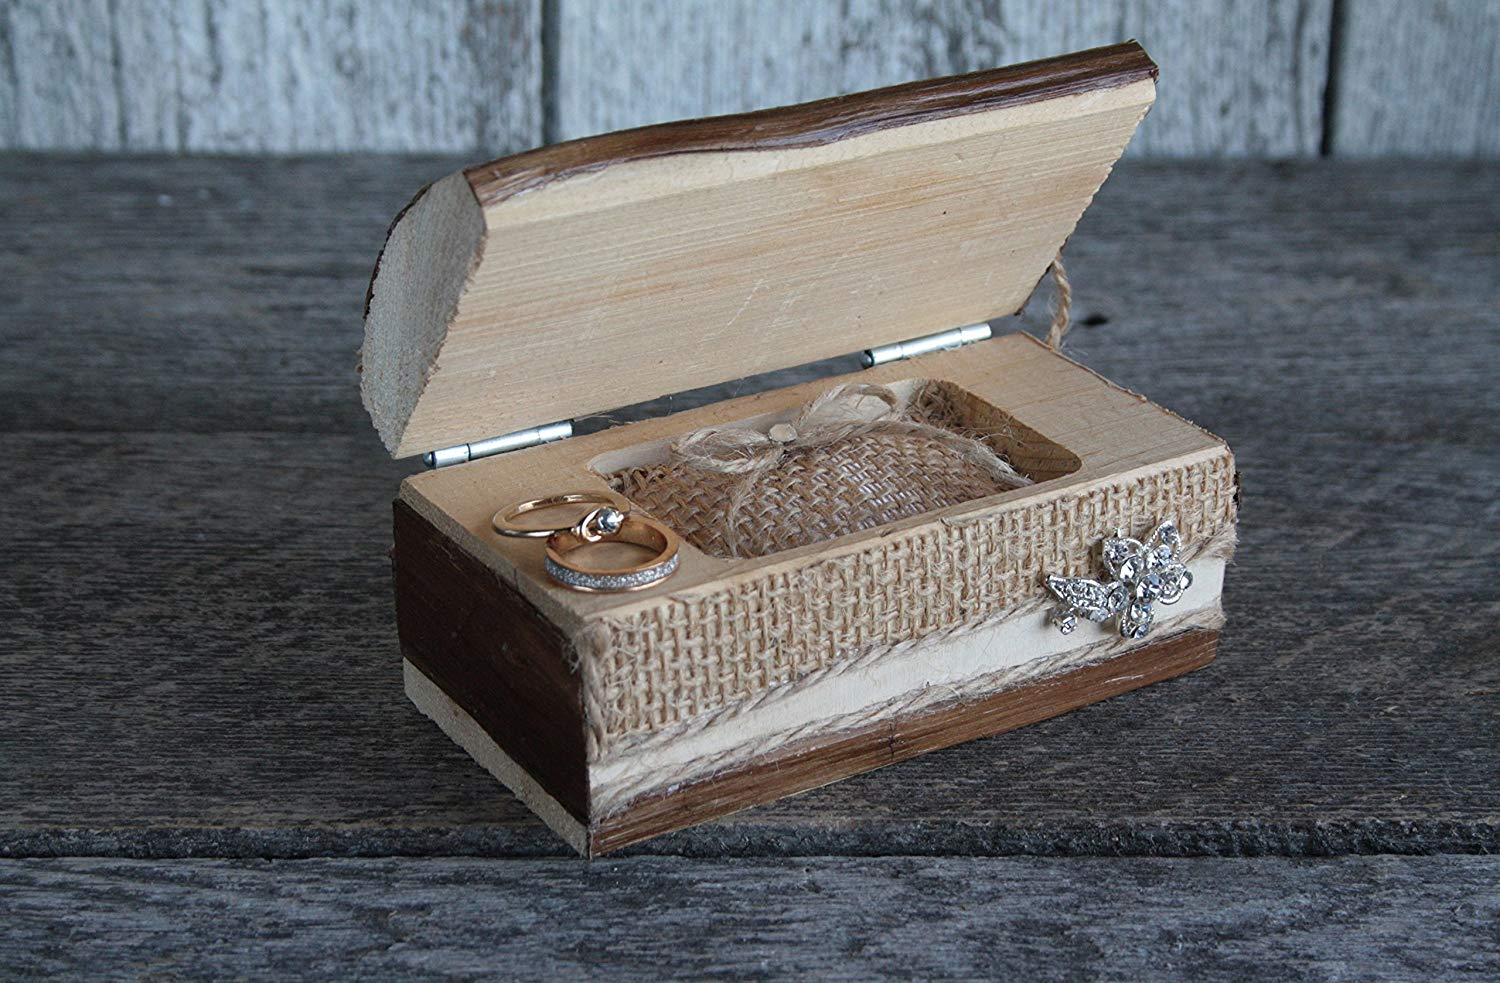 4622ace839 Get Quotations · Engagement ring box, Ring bearer box, Ring bearer pillow  alternative, Rustic wedding ring